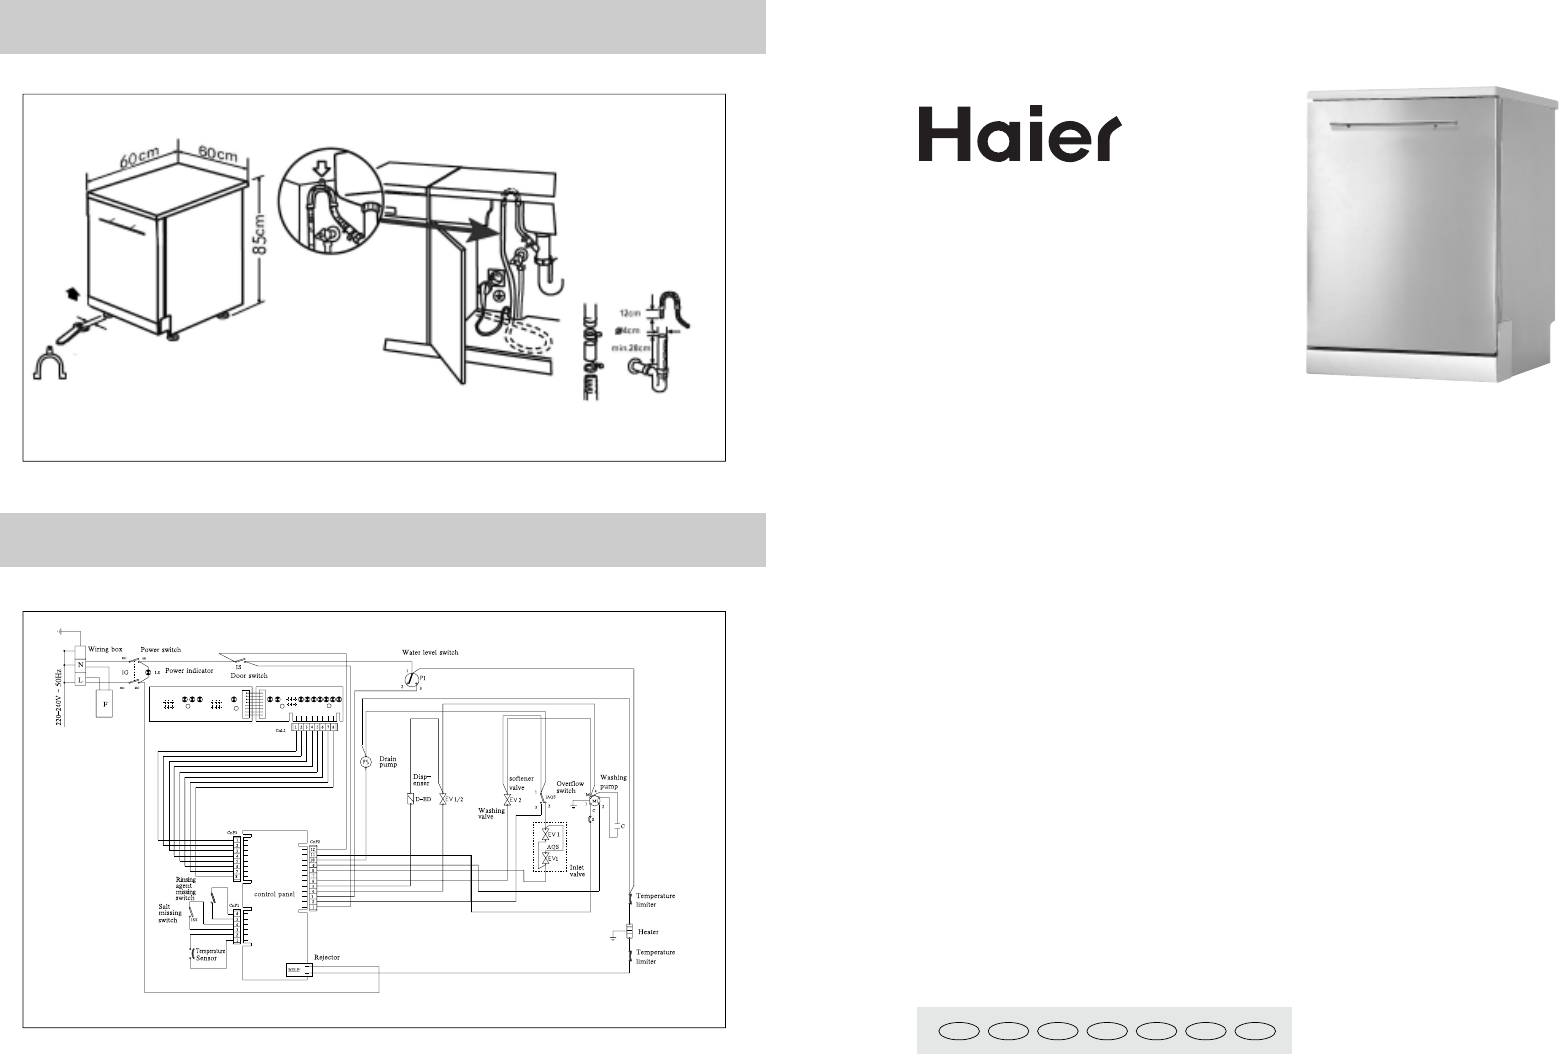 Haier Oven Wiring Diagram Tractor Wiring Diagrams • Googlea4.com on